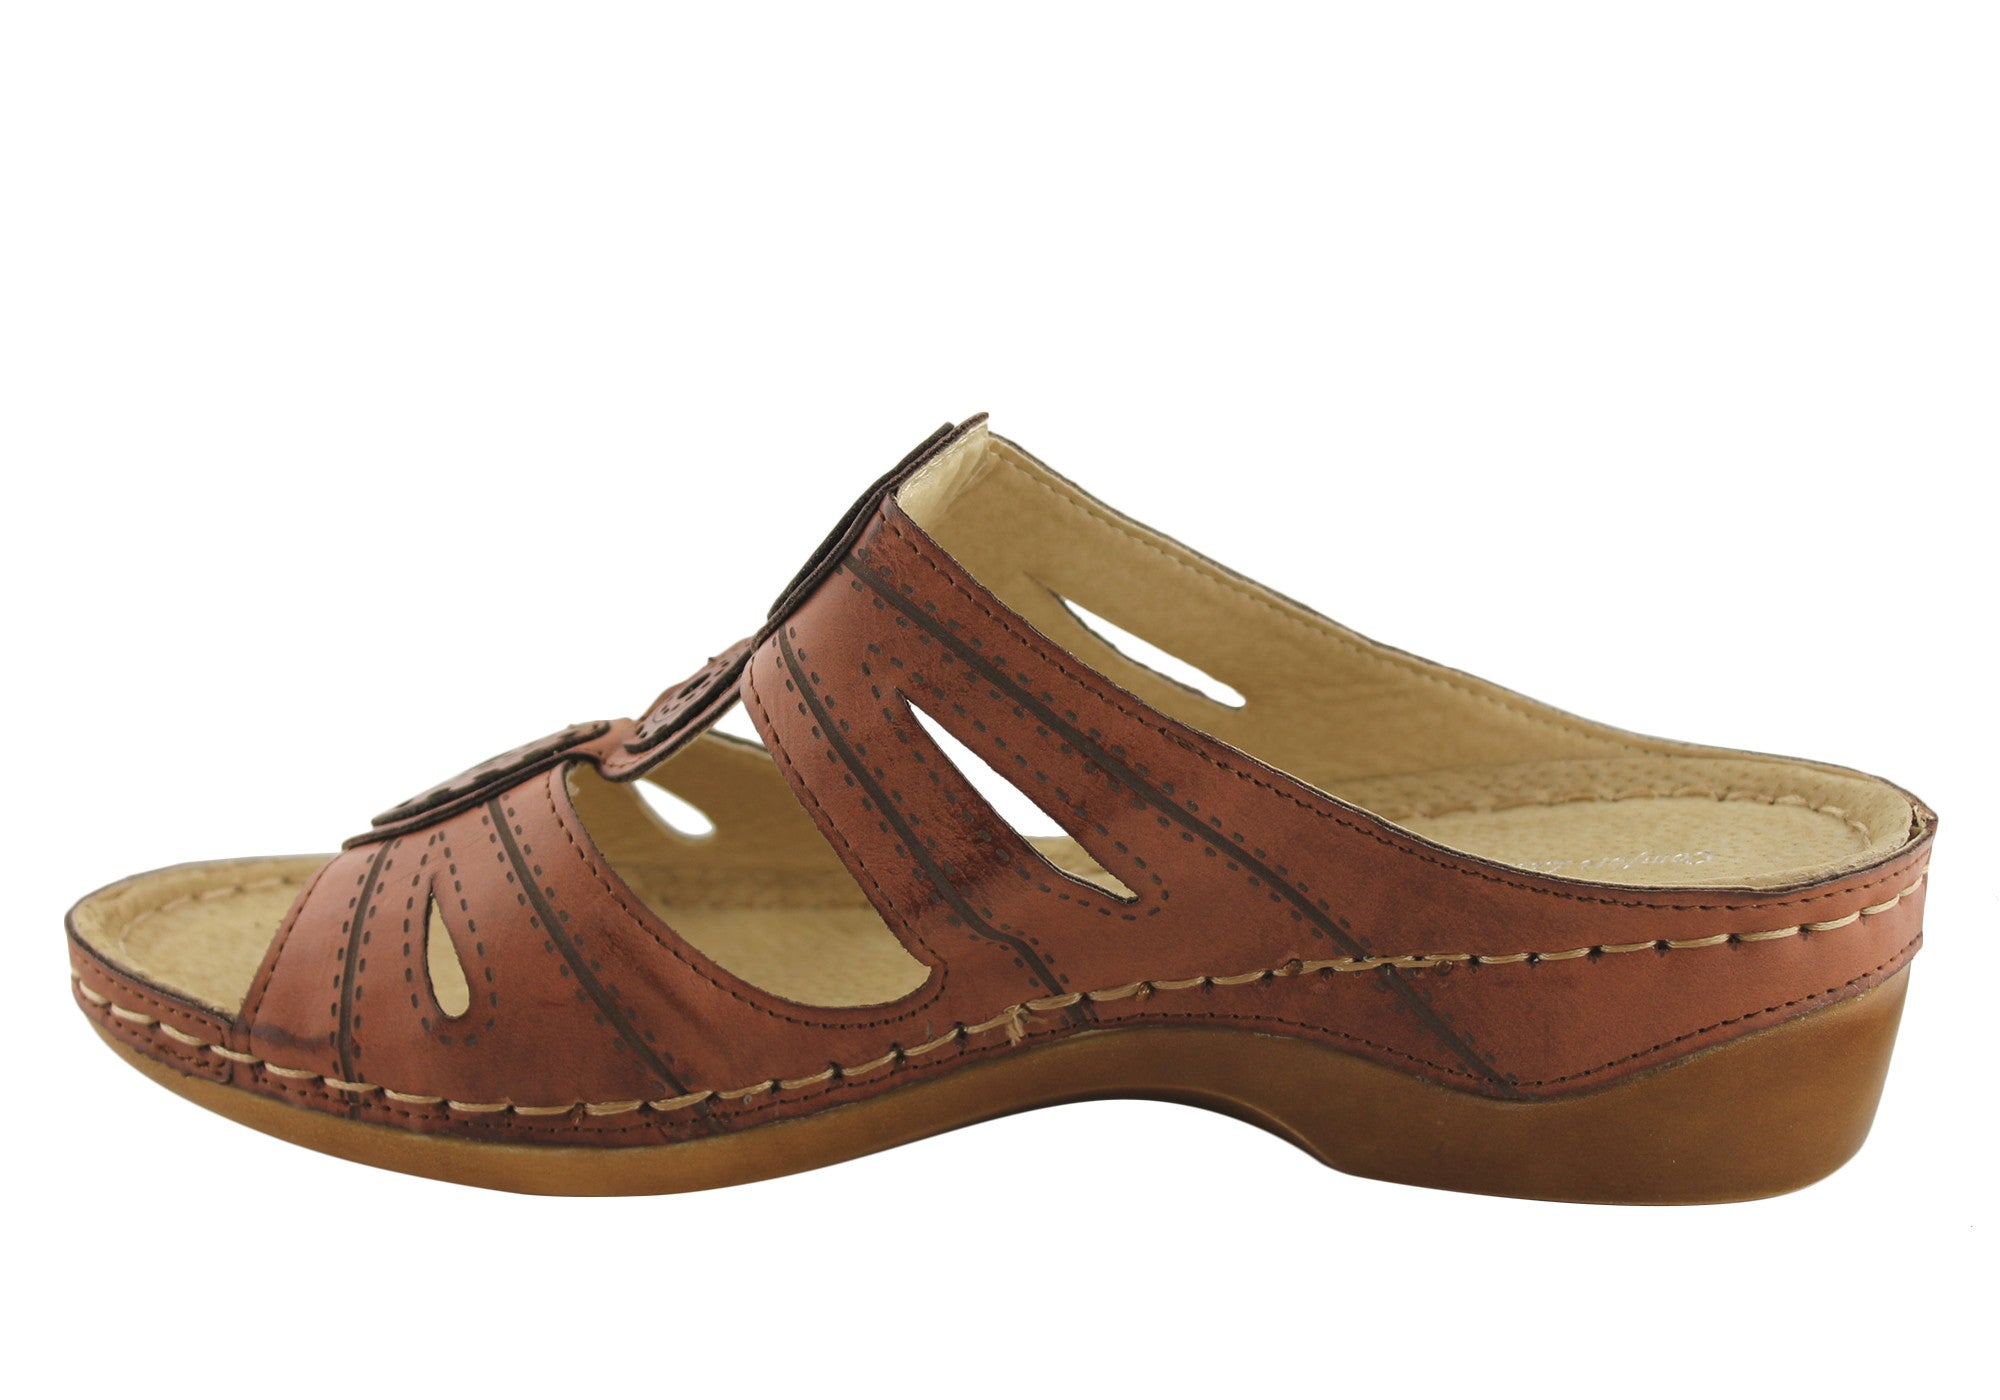 Comfort Leisure Ziva Womens Comfort Sandals